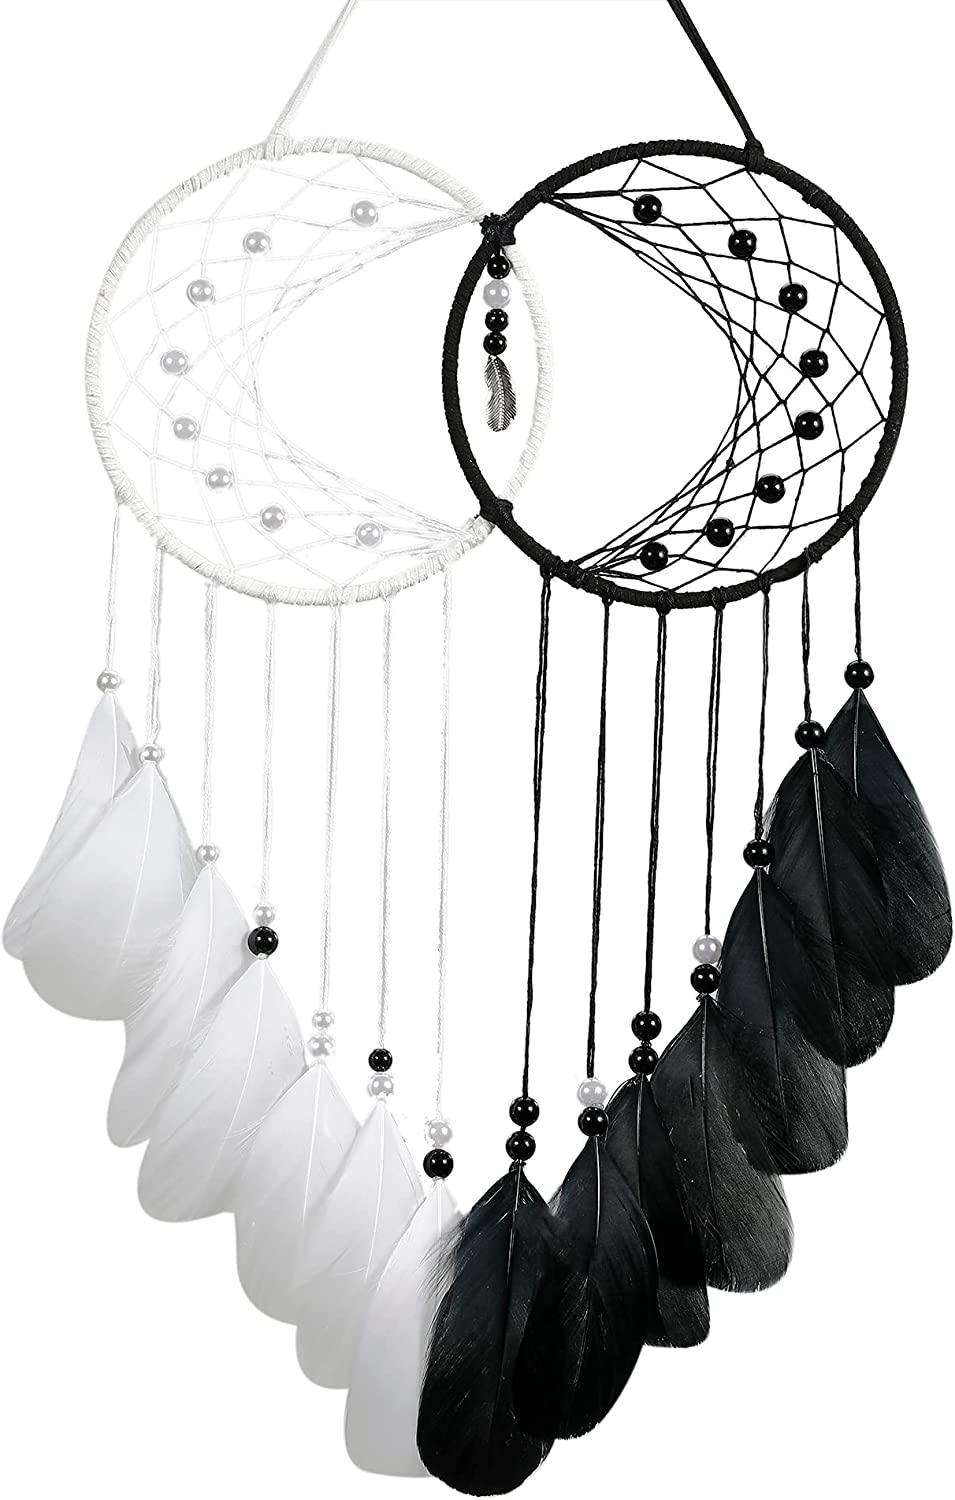 Holmgren Black White Dream Catchers - Handmade Moon Dream Catcher for Bedroom, Home Decor Wedding Wall Decor, Gifts for Couples(Black and White)